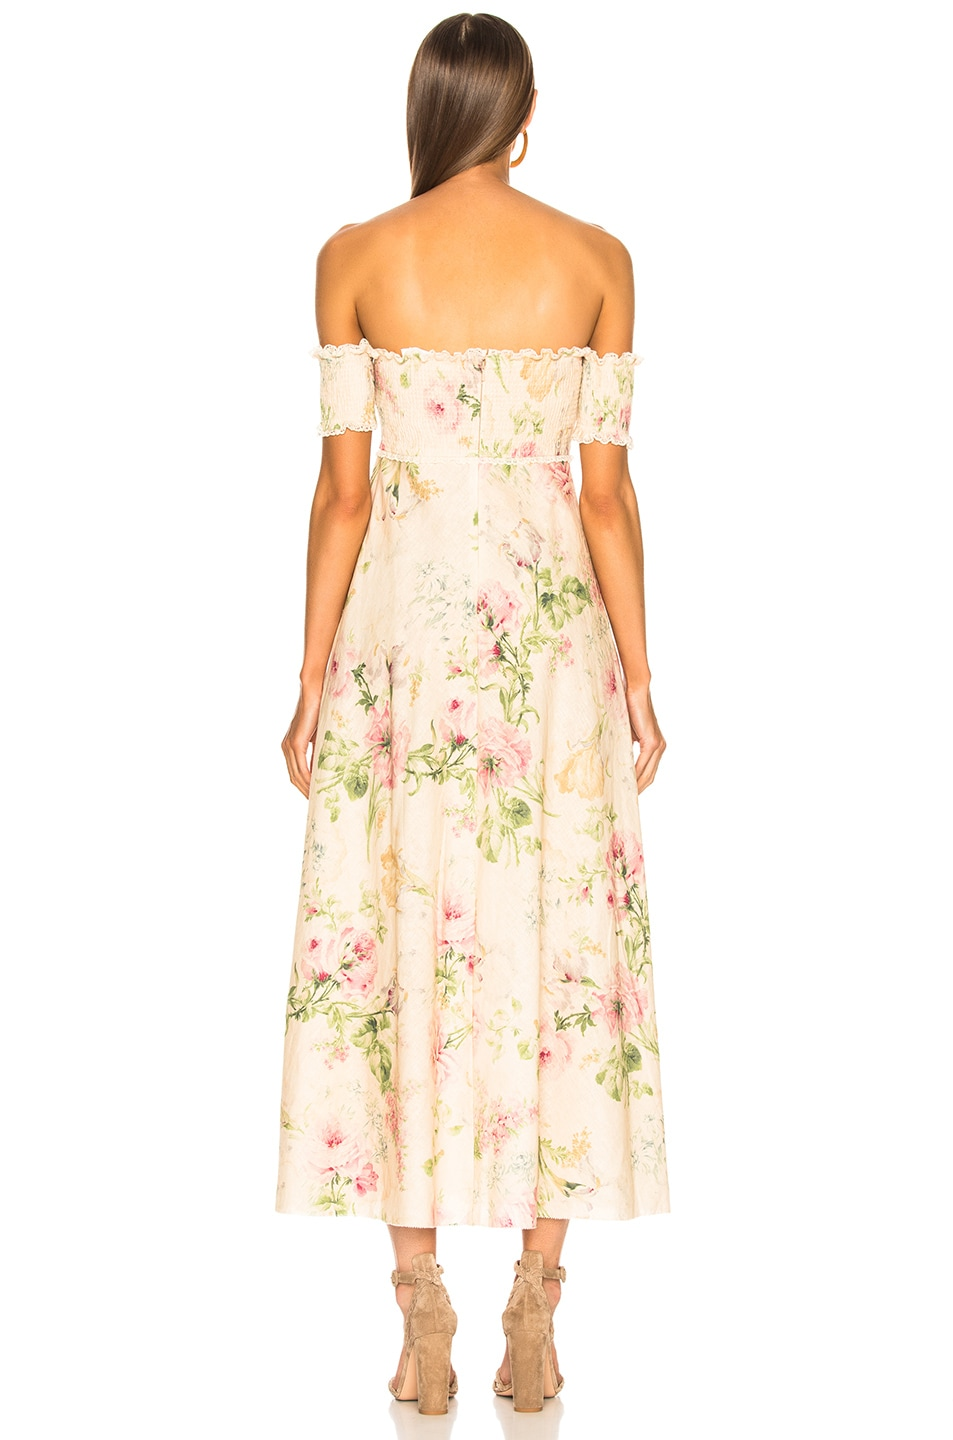 c5e9469d4ab5 Image 3 of Zimmermann Iris Shirred Bodice Maxi Dress in Cream Floral